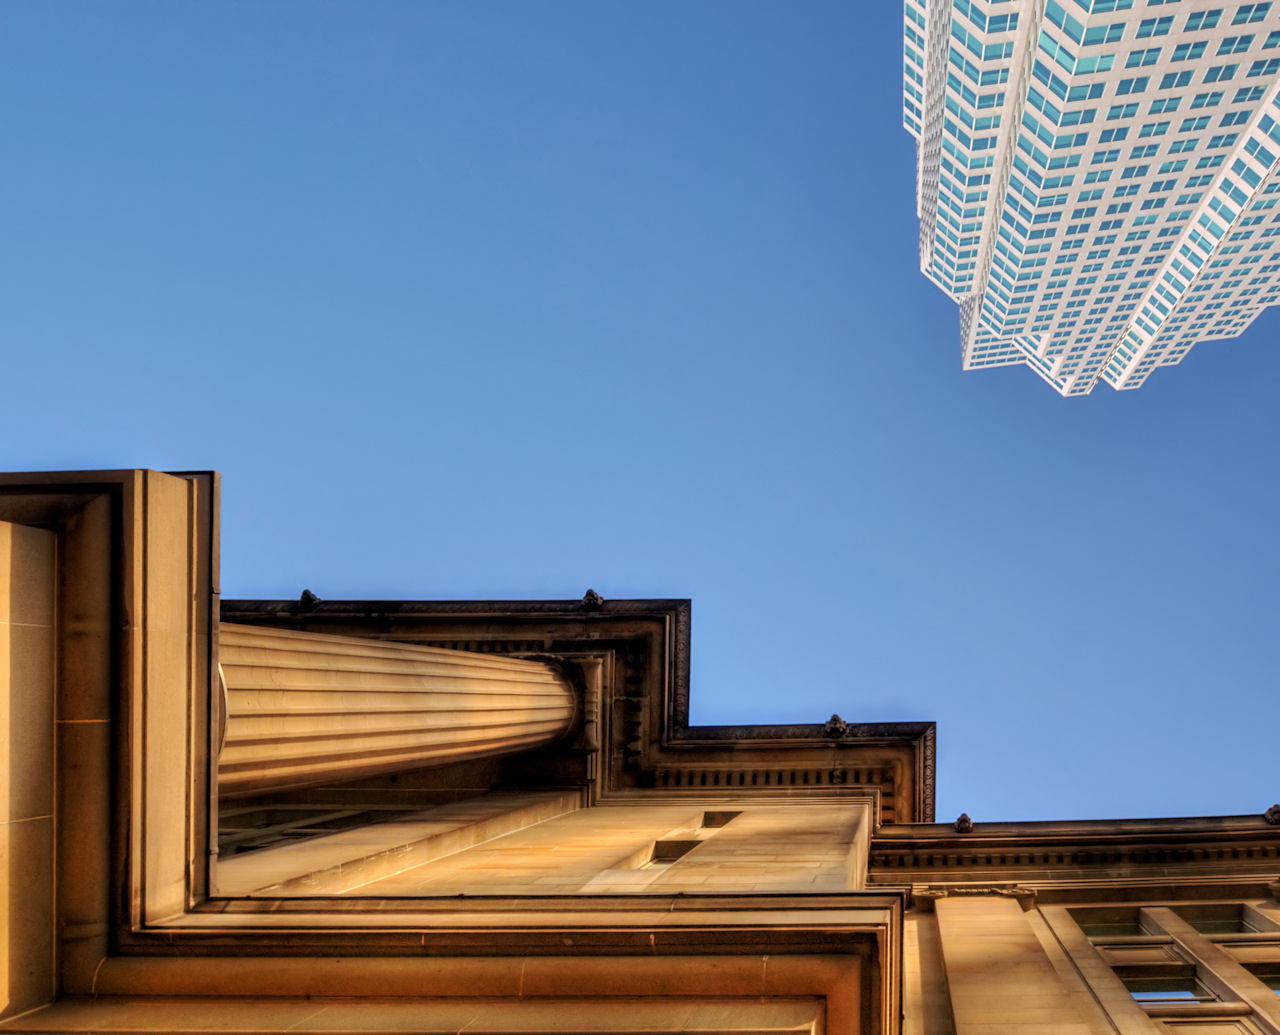 Grant McDonald, 'Old and New Upward View' 2009